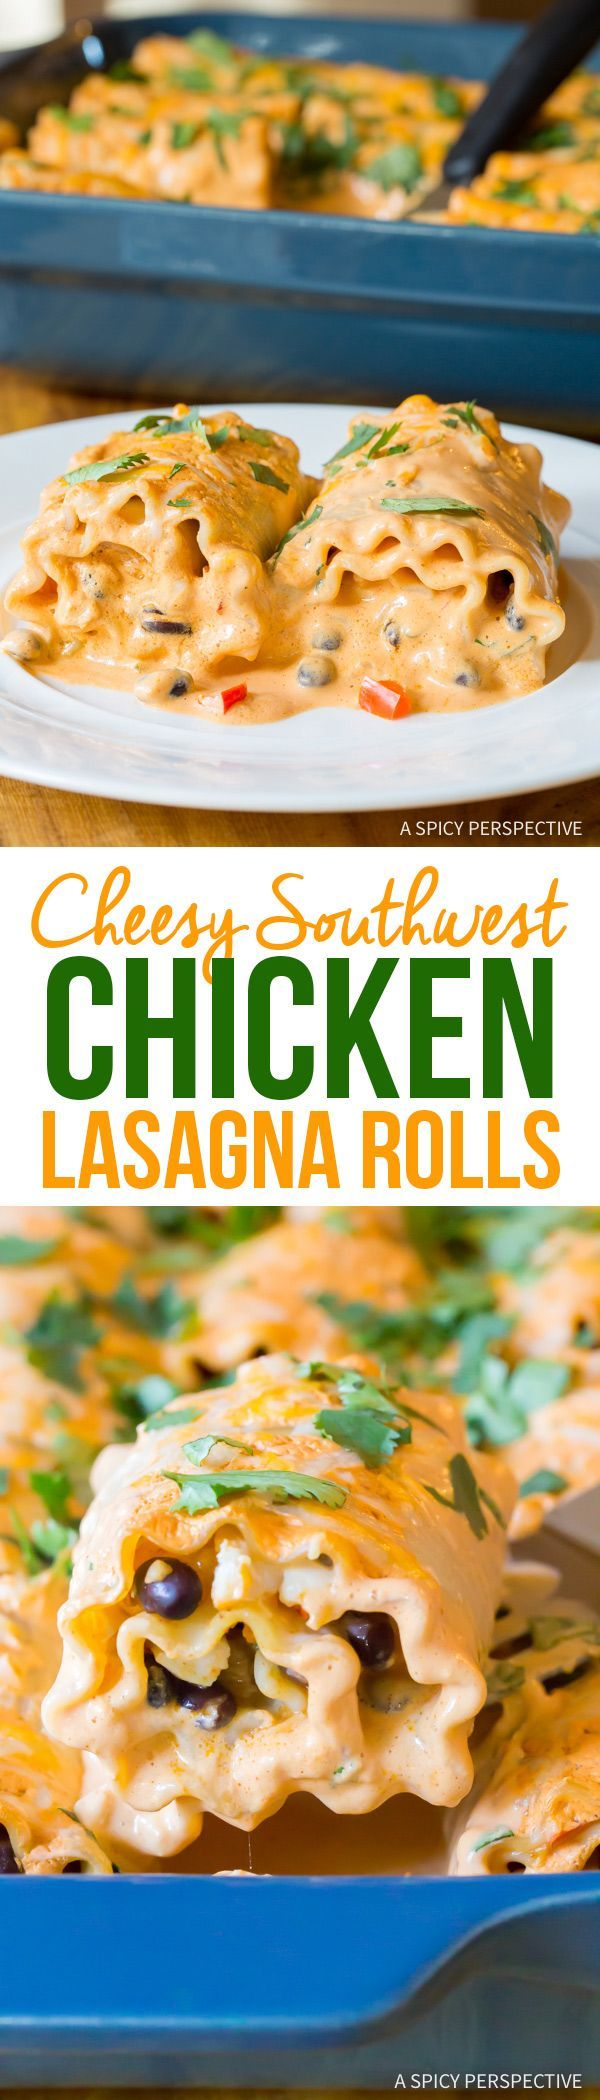 Best Cheesy Southwest Chicken Lasagna Rolls